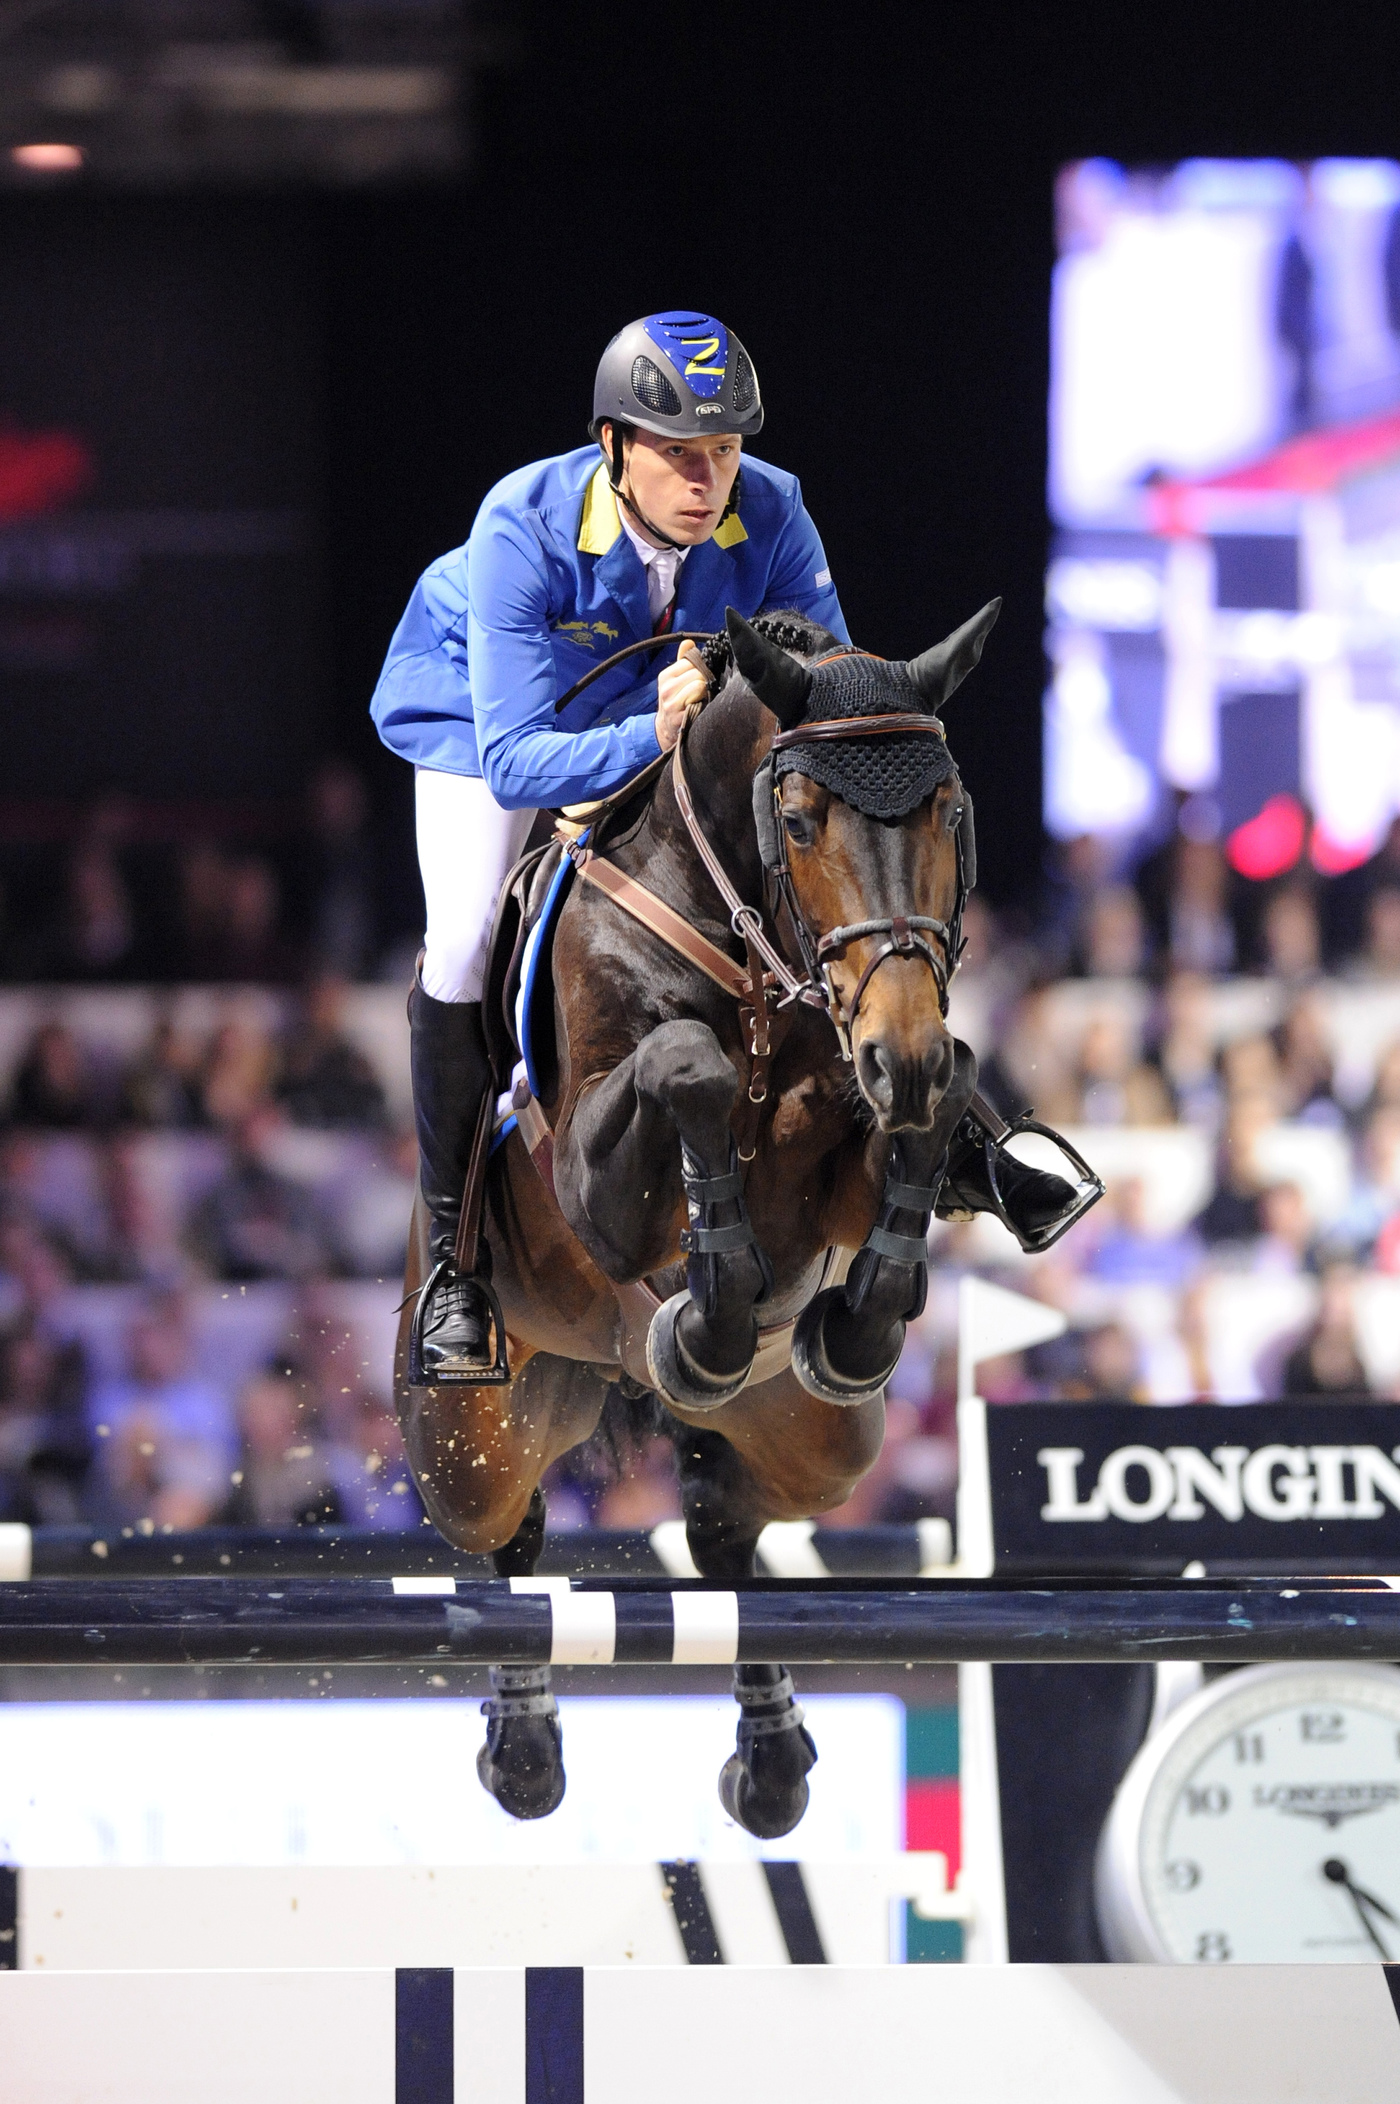 Longines Show Jumping Event: Christian Ahlmann holds world number one slot in the Longines Rankings 1